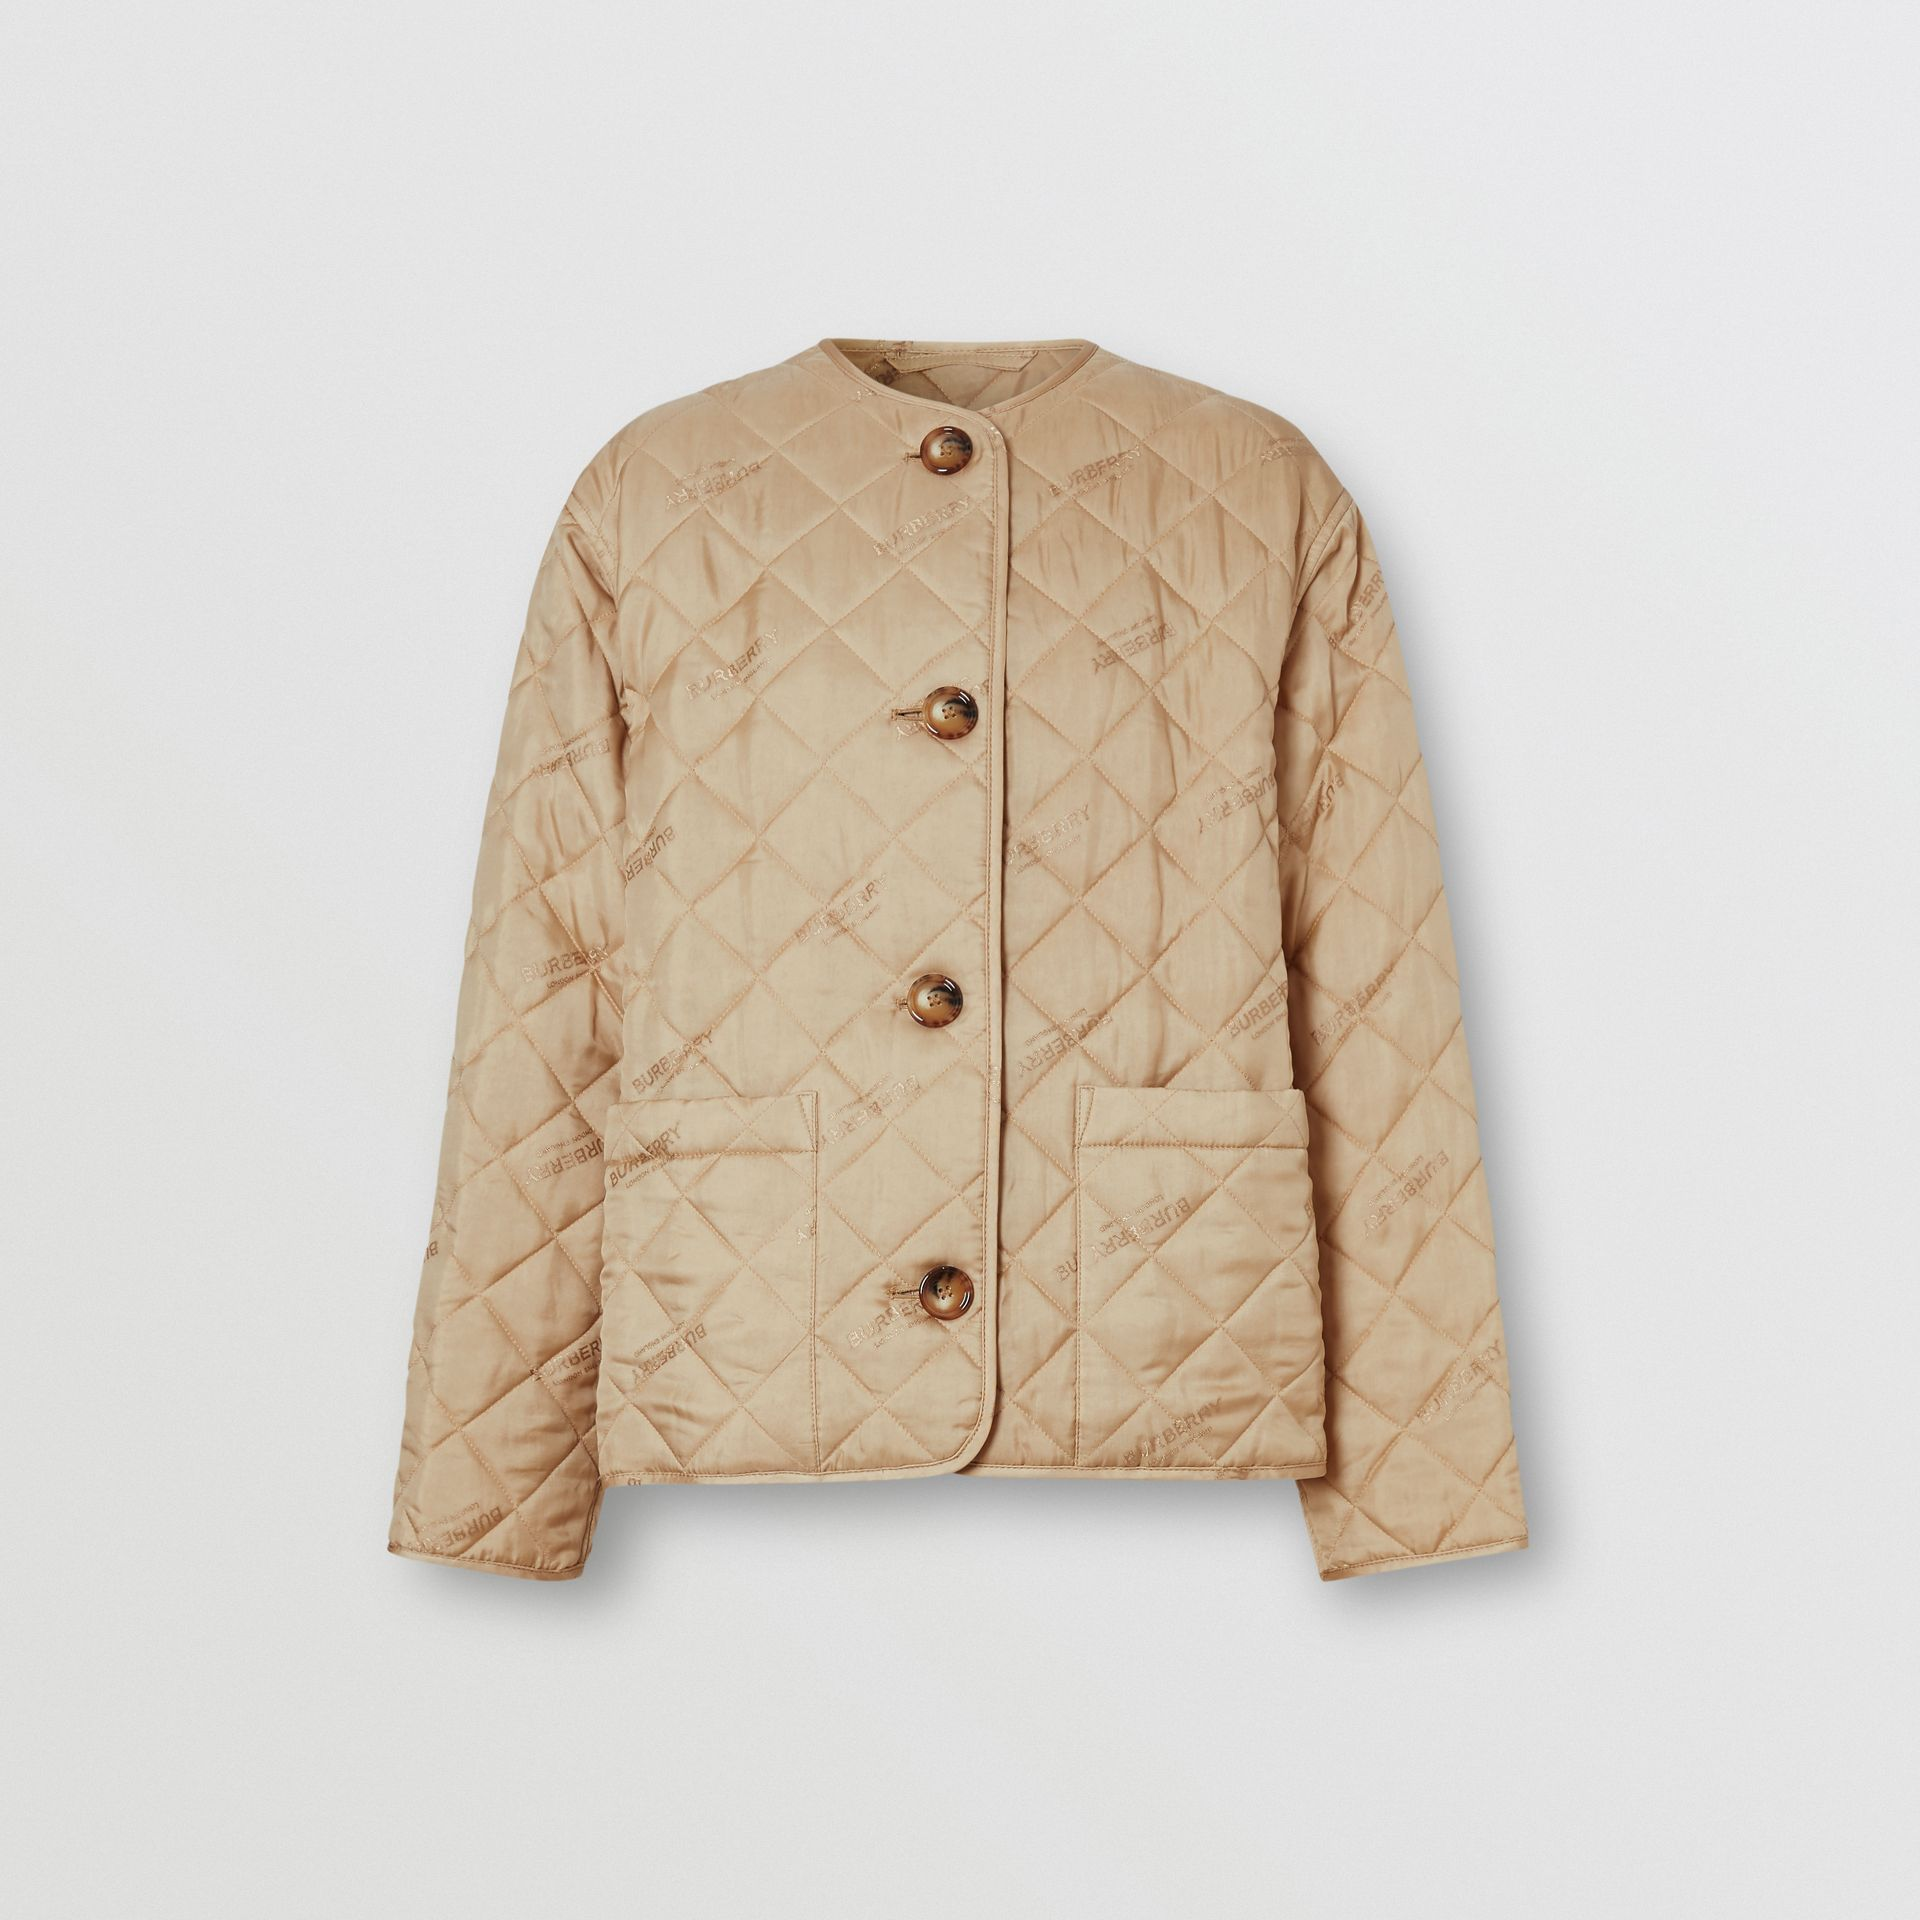 Logo Jacquard Diamond Quilted Jacket in Ecru - Women | Burberry Singapore - gallery image 3